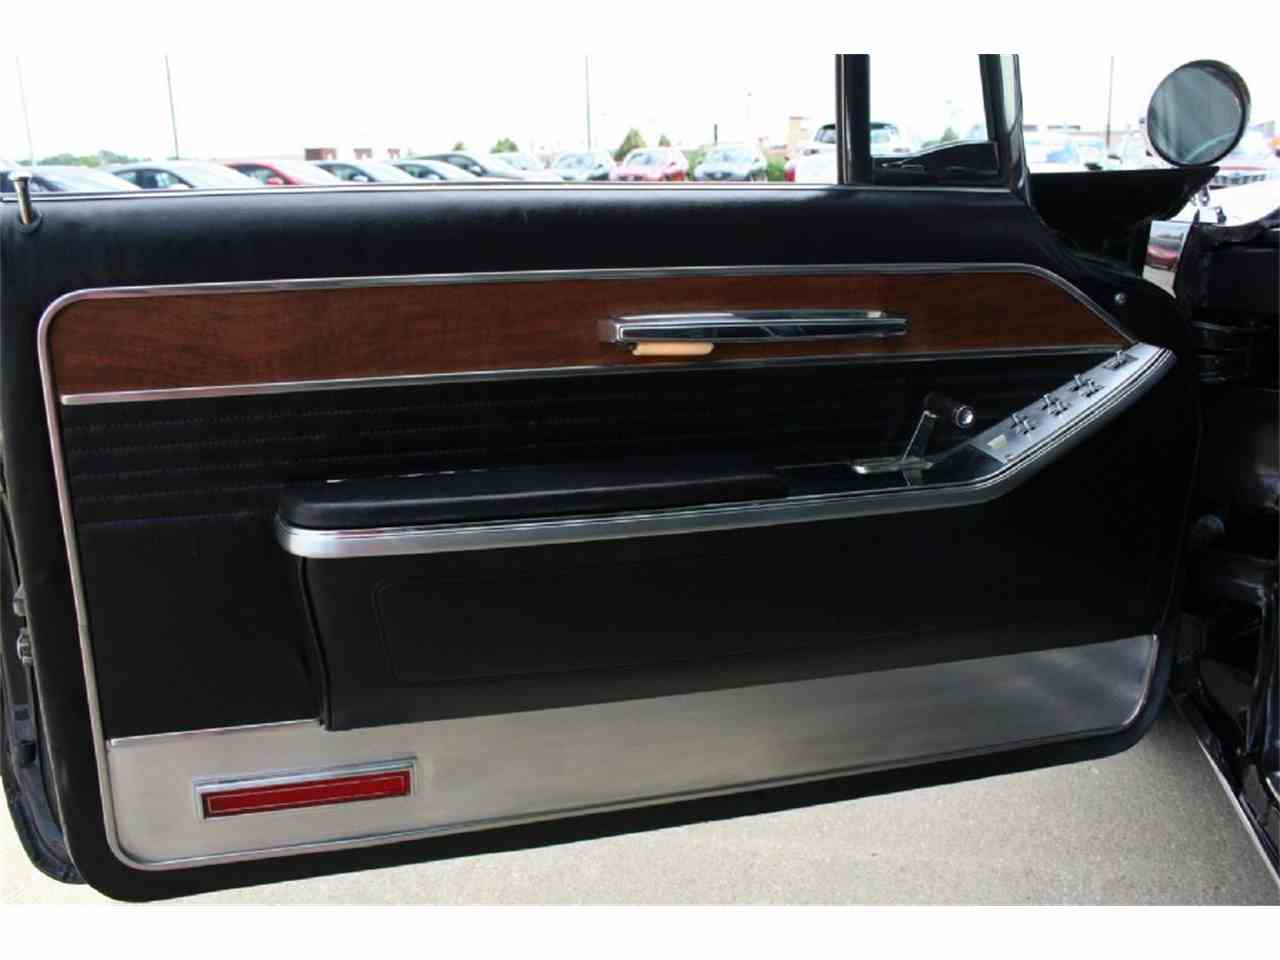 Large Picture of 1965 Chrysler Imperial located in Sioux City Iowa - $54,300.00 - JEGD